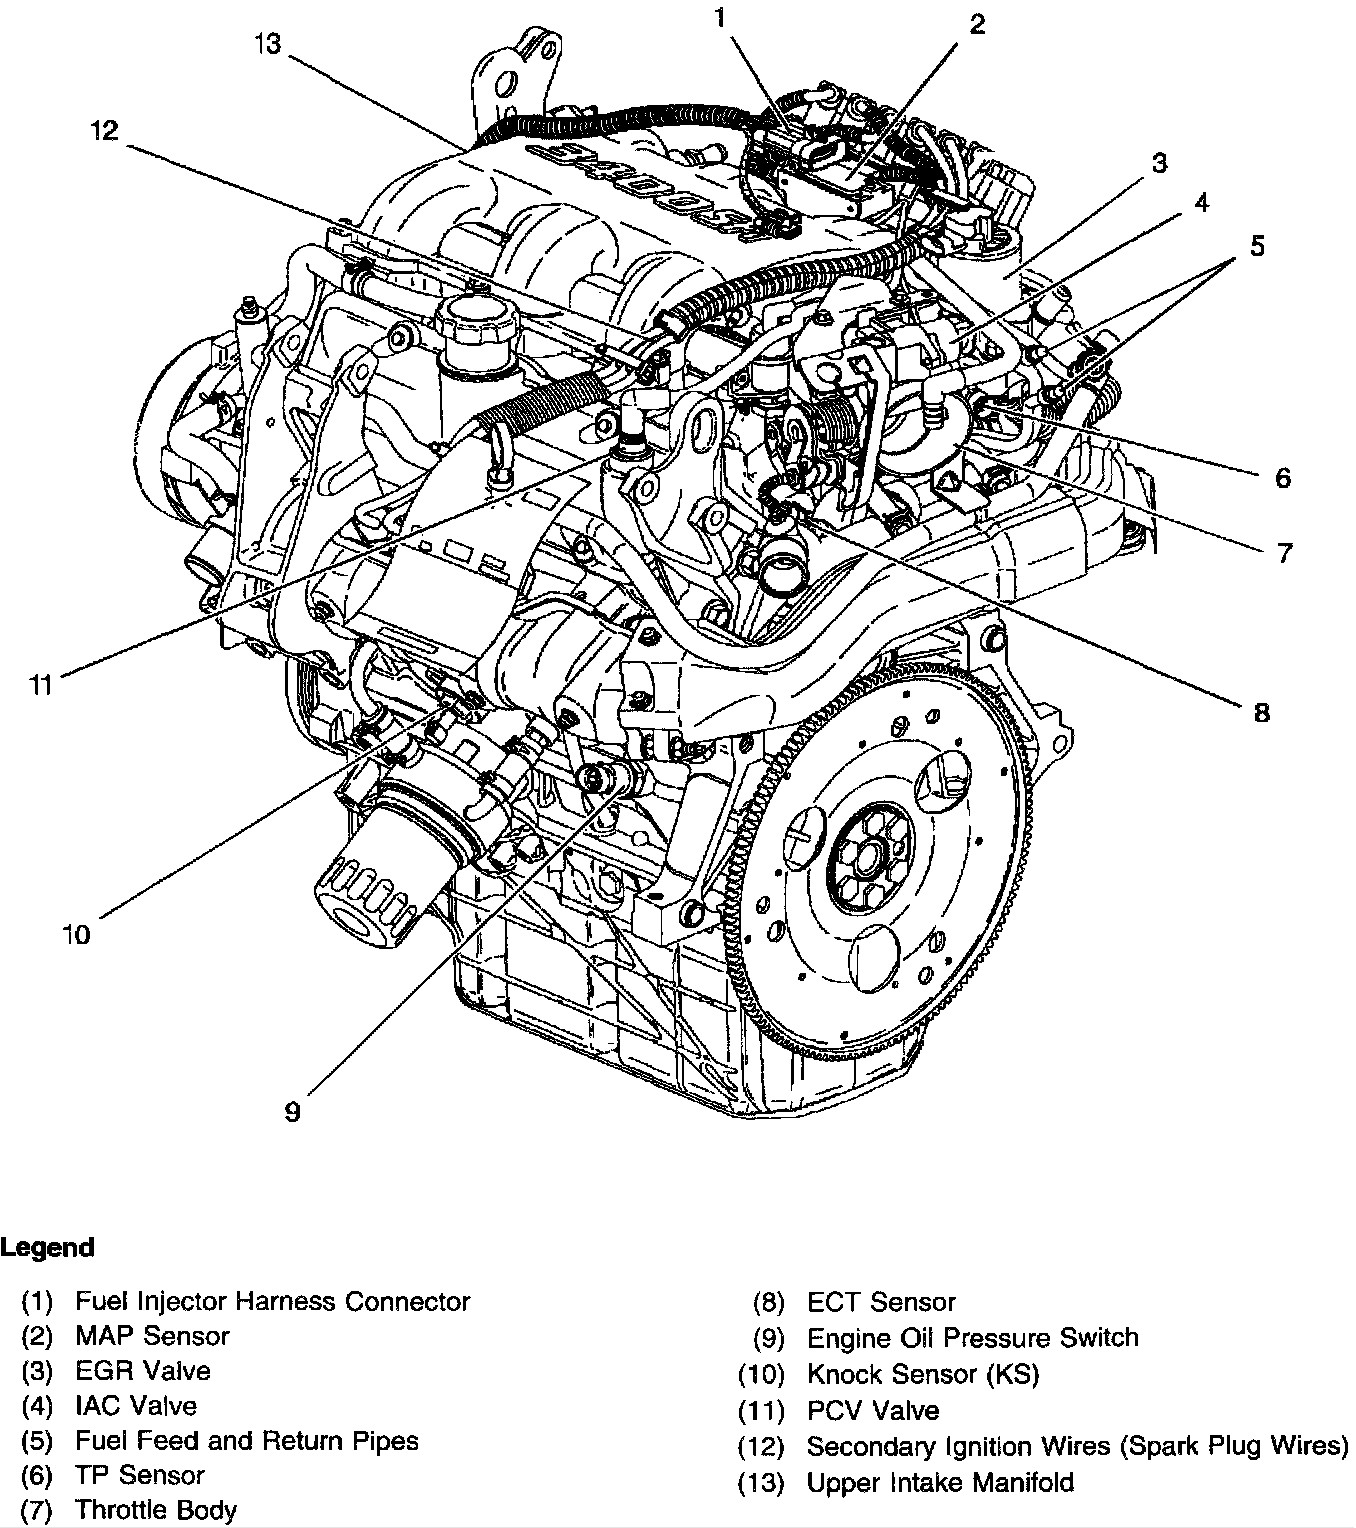 V6 Diagram 3100 Buick Mechanical Engine - Wiring Diagram Work on